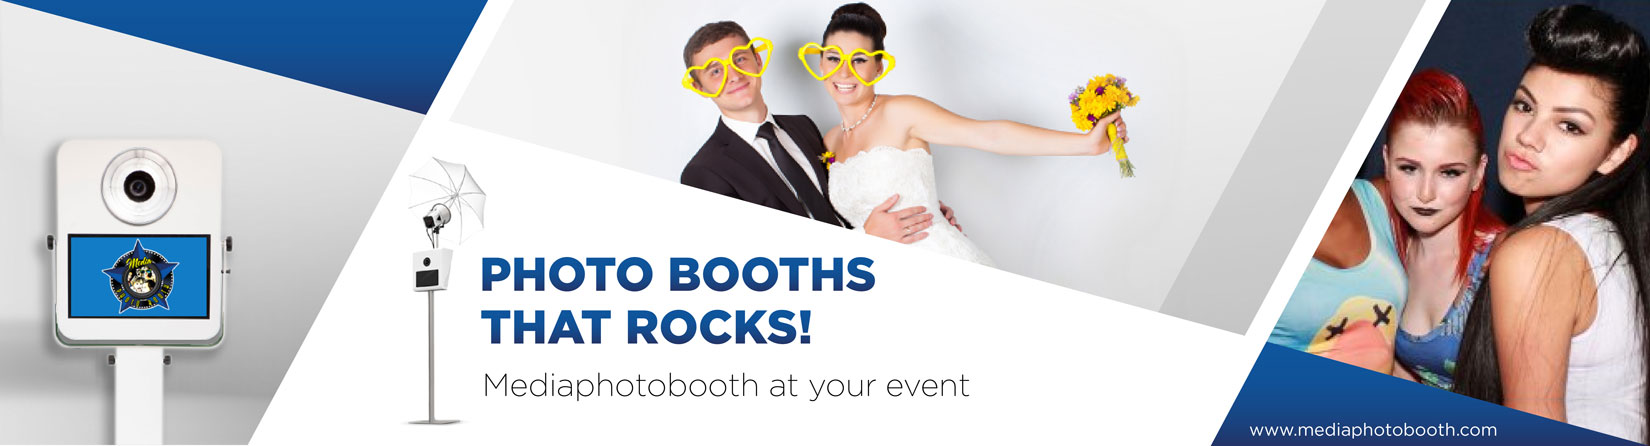 Media photobooth